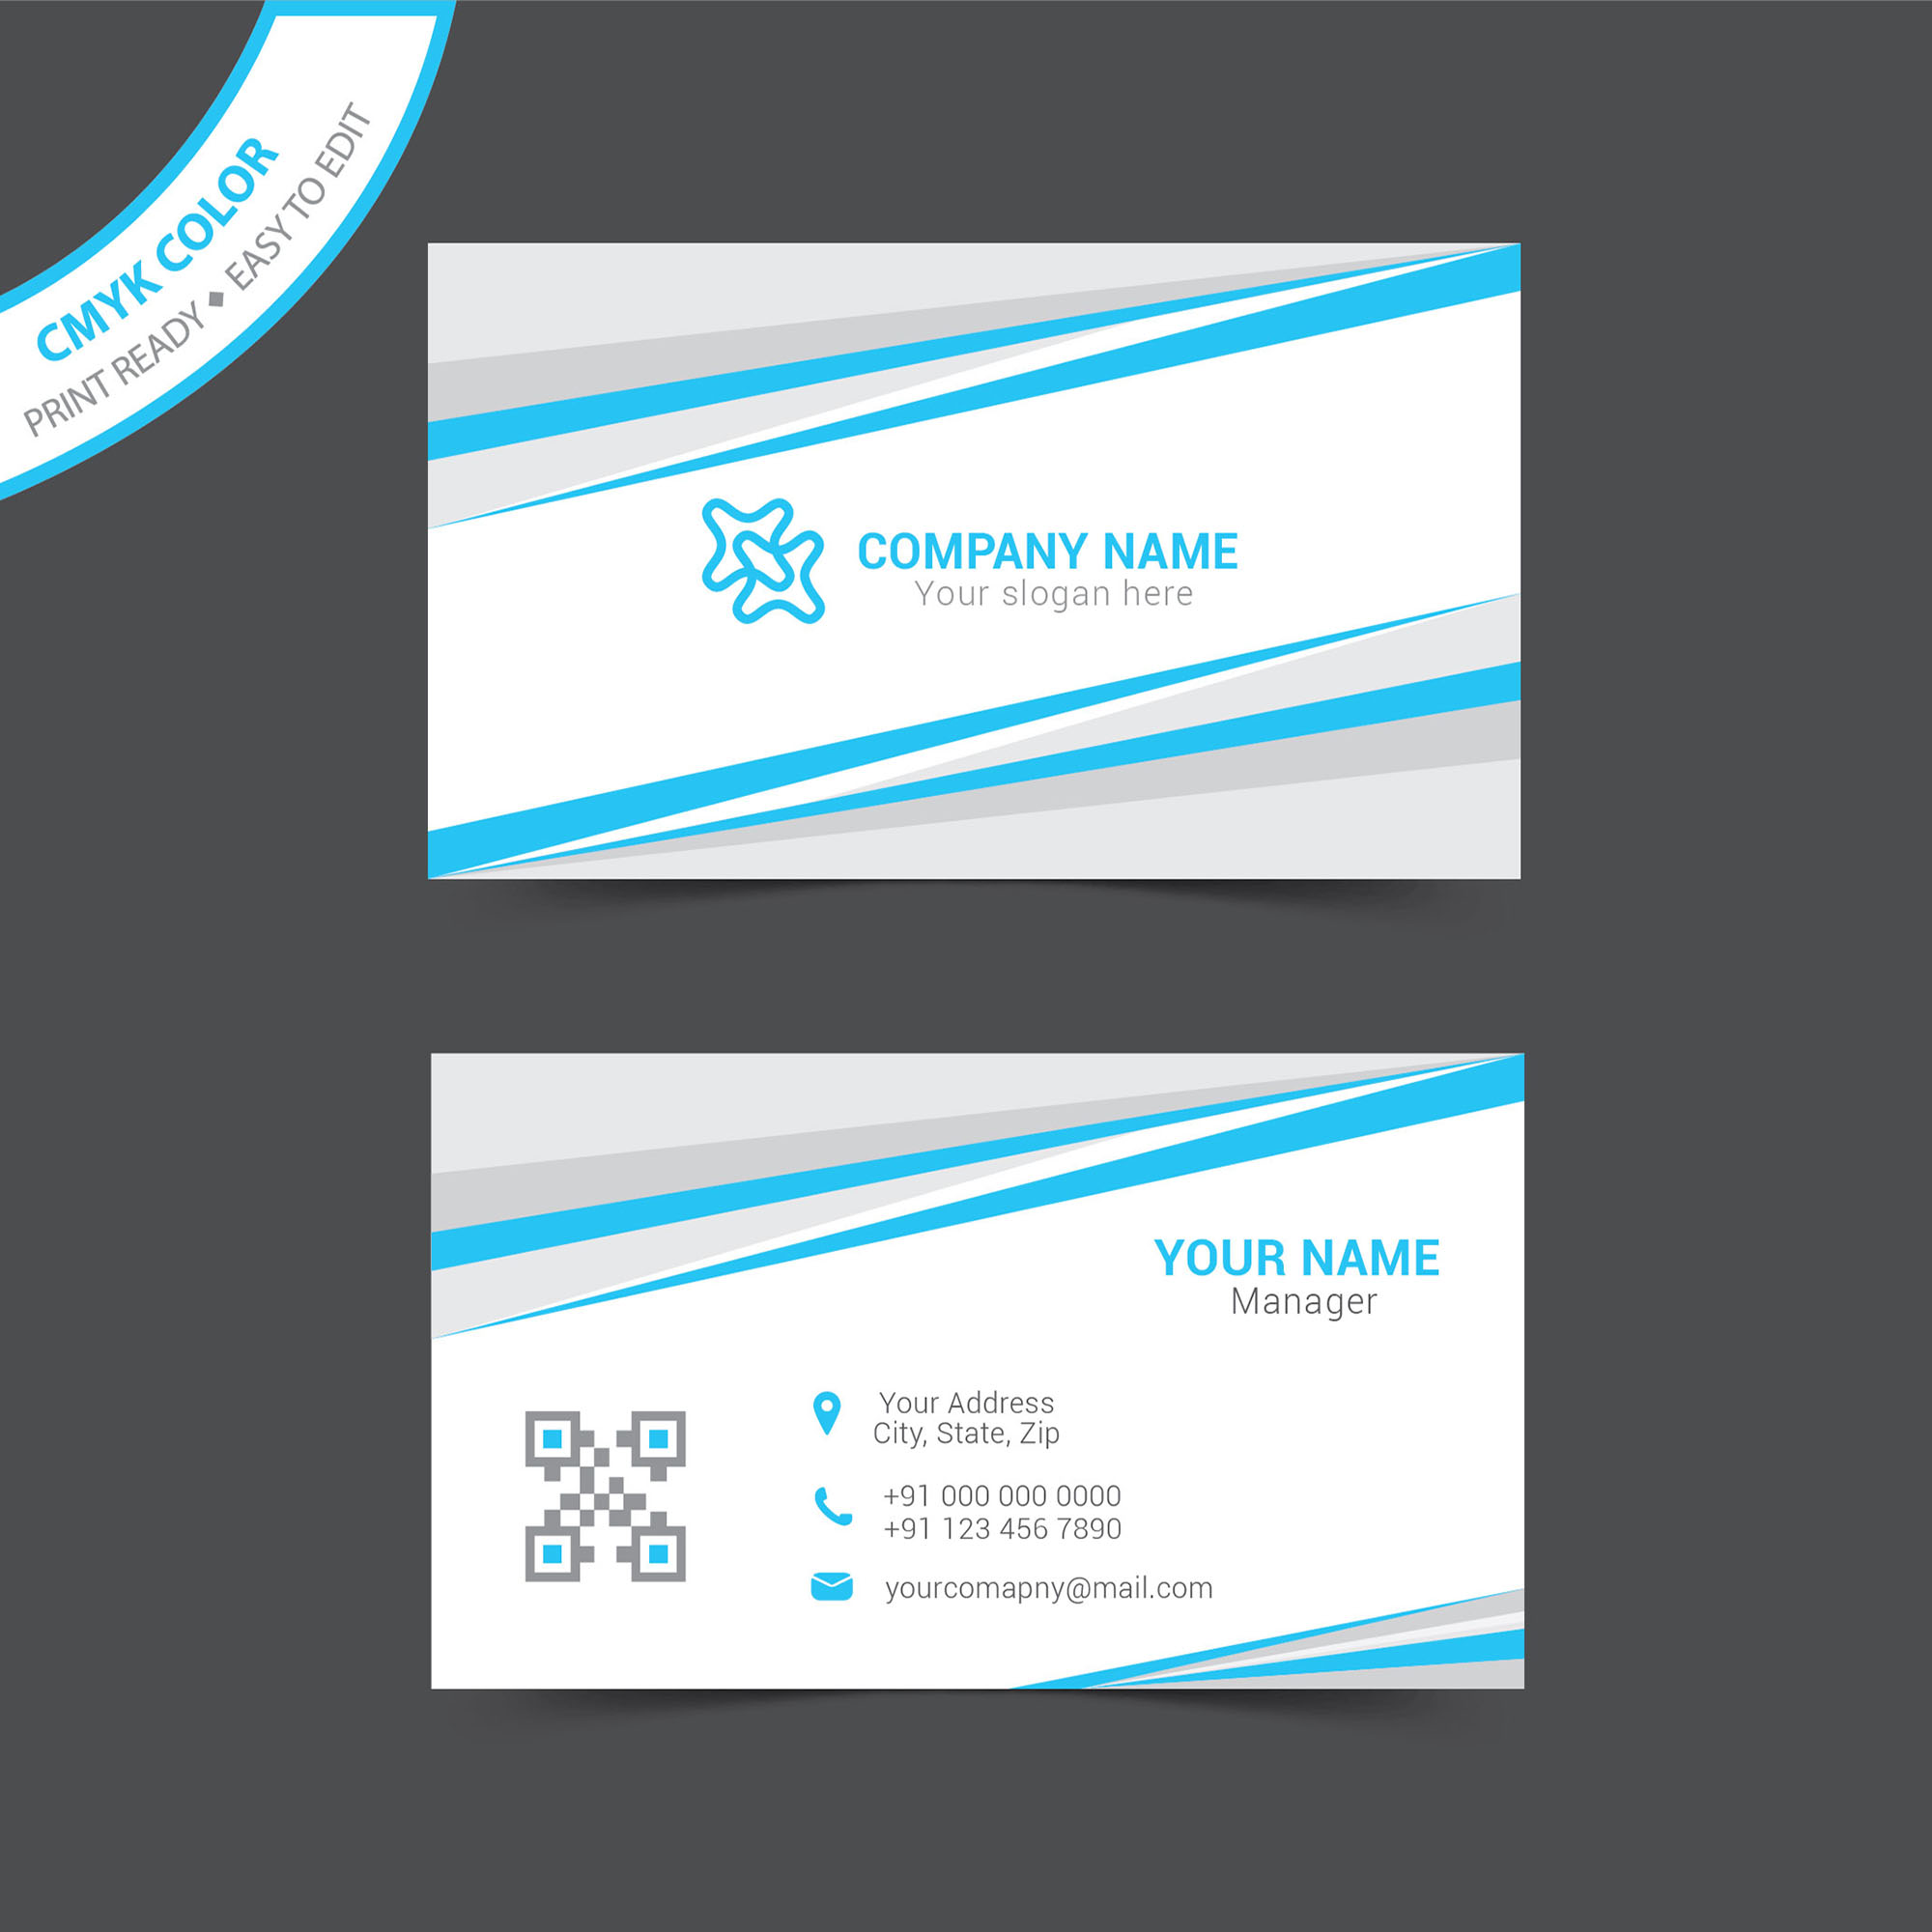 Simple business card template free download wisxi business card business cards business card design business card template design templates fbccfo Gallery